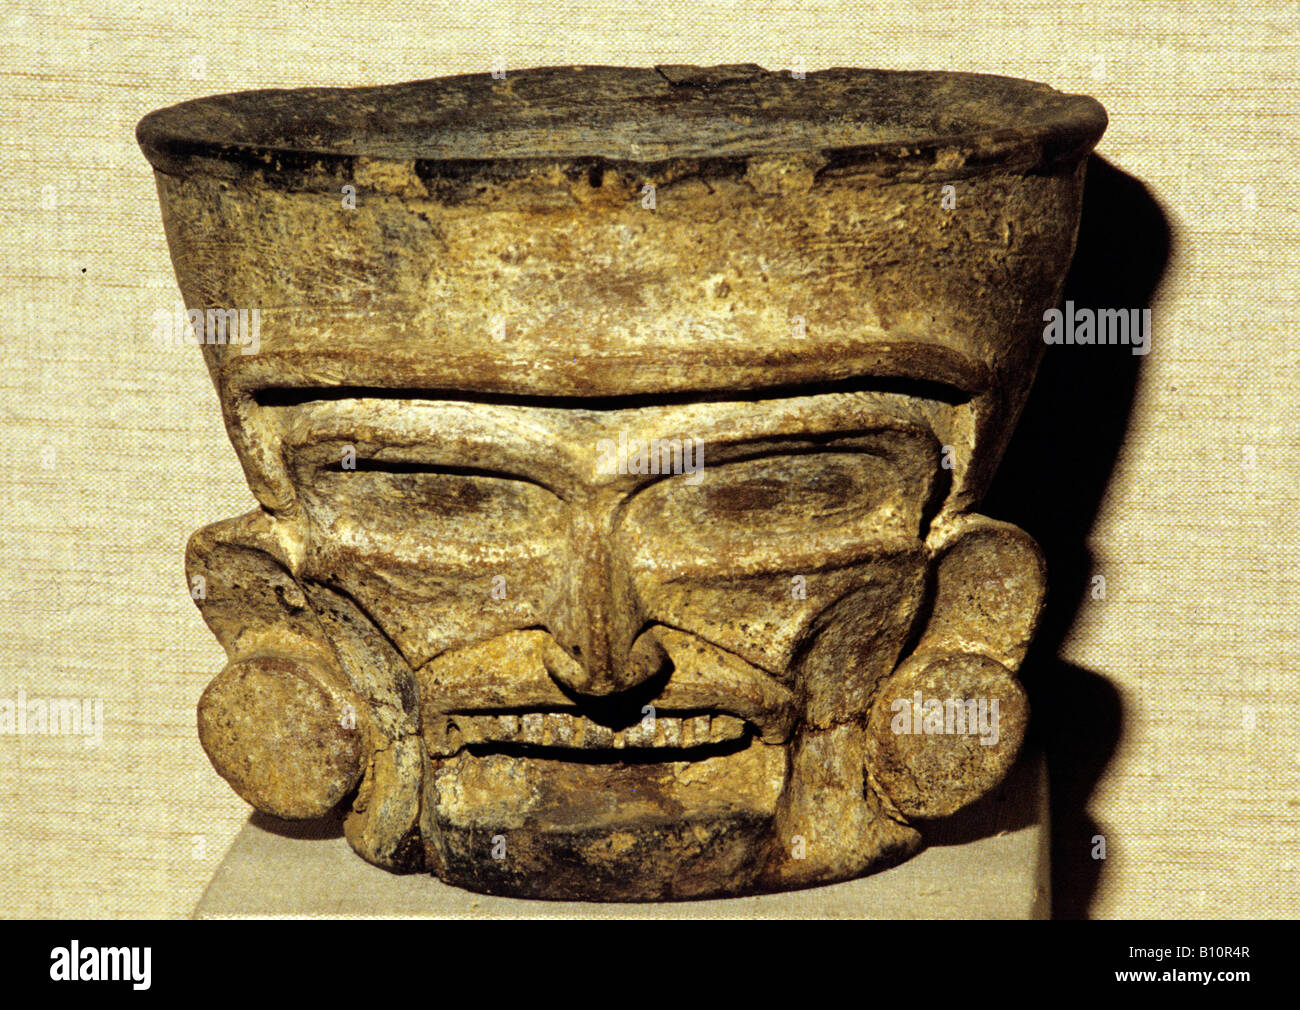 Aztec god Huehueteotl from Quetzaltepeque Mexico  Copyright: AAA Collection Ltd - Stock Image